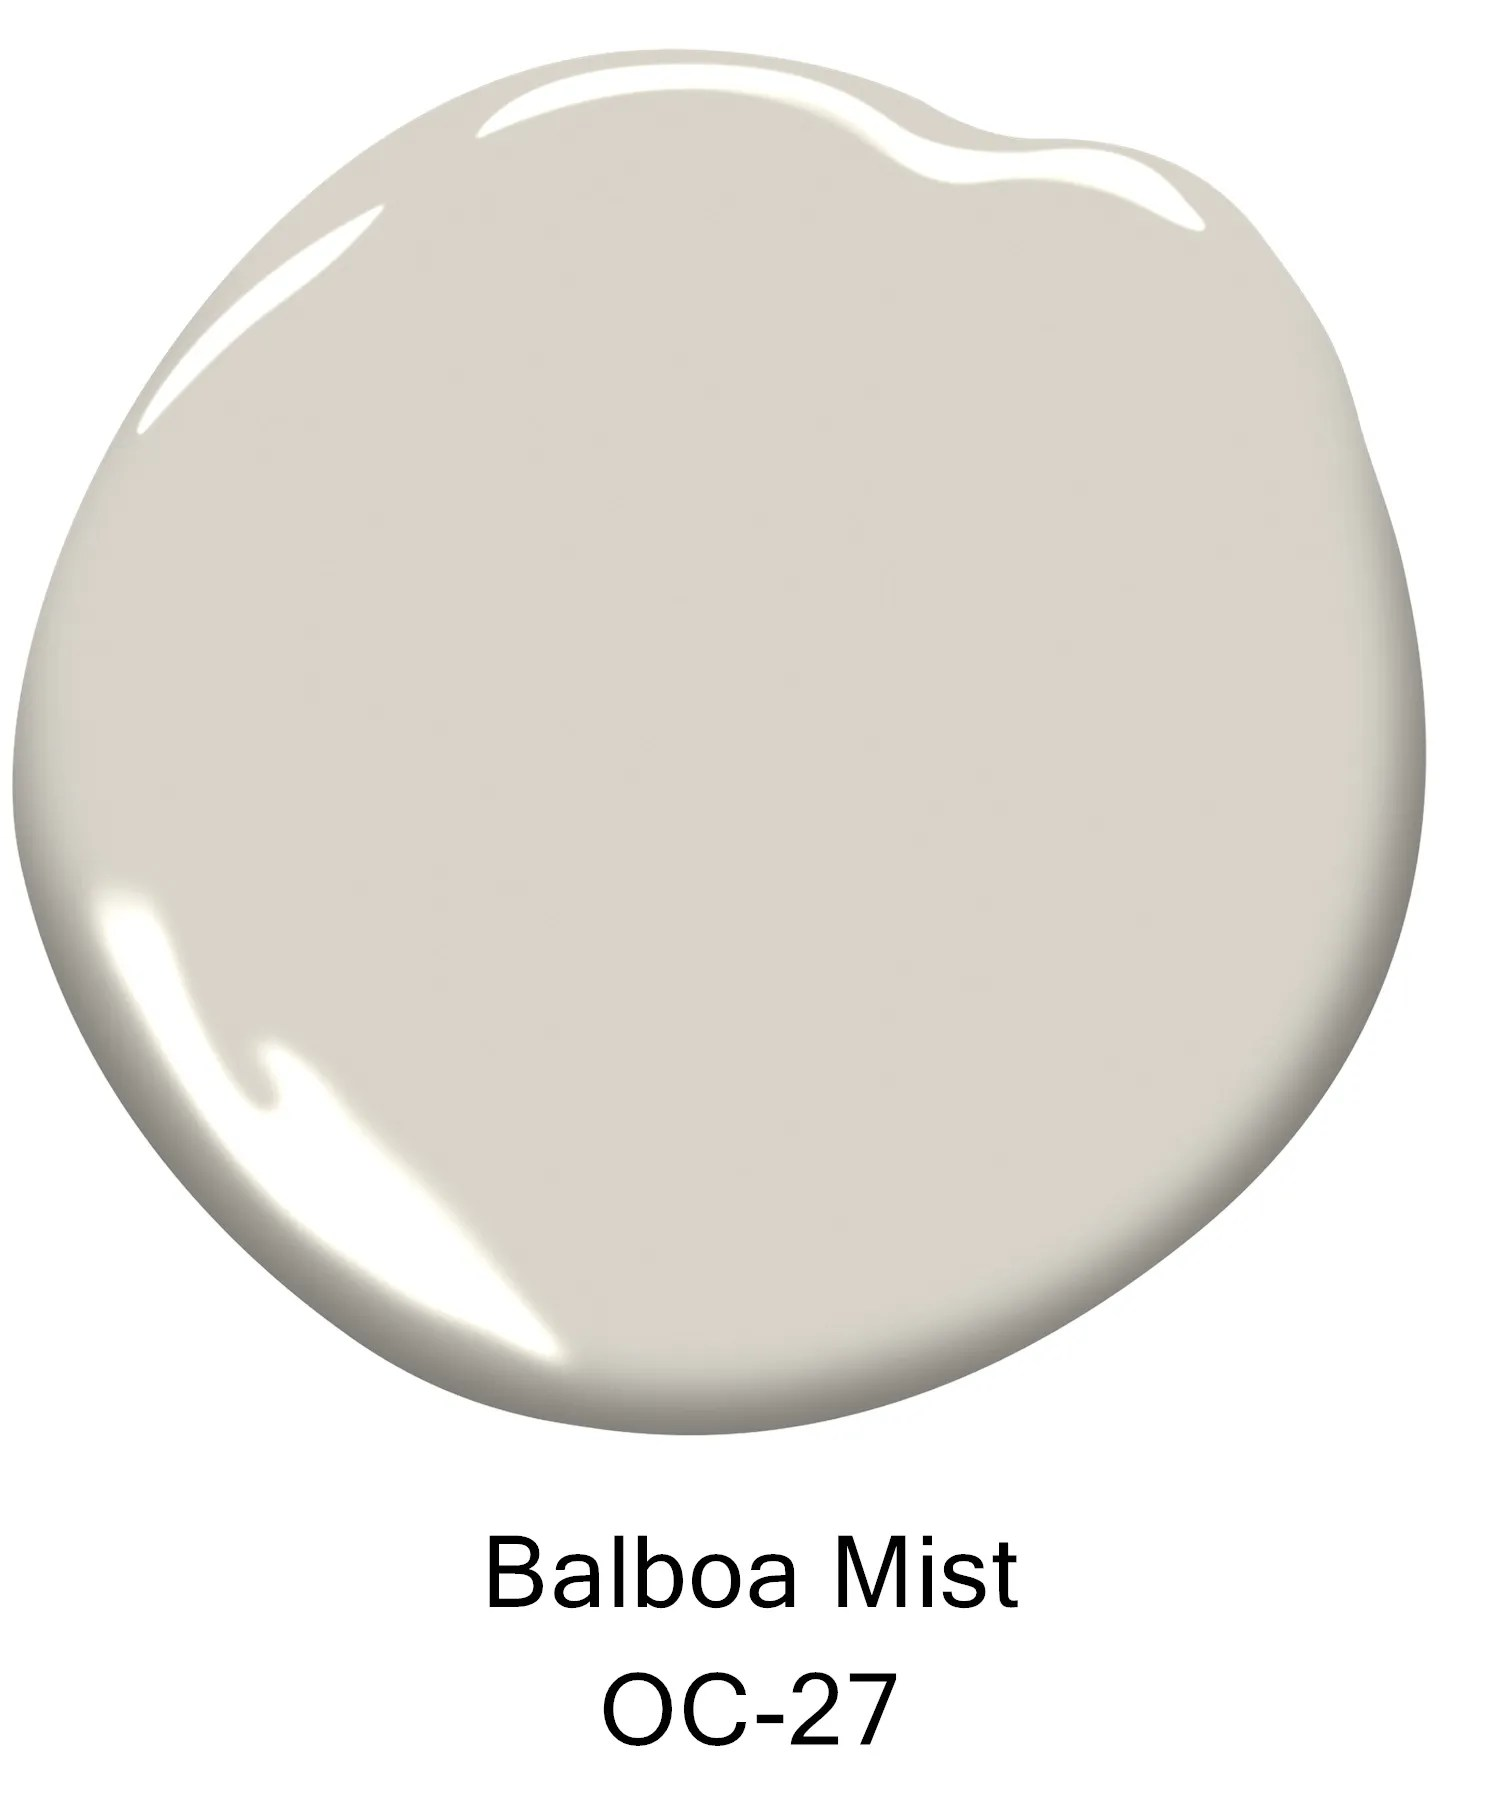 15 Top Selling Benjamin Moore Paint Colors Architectural Digest